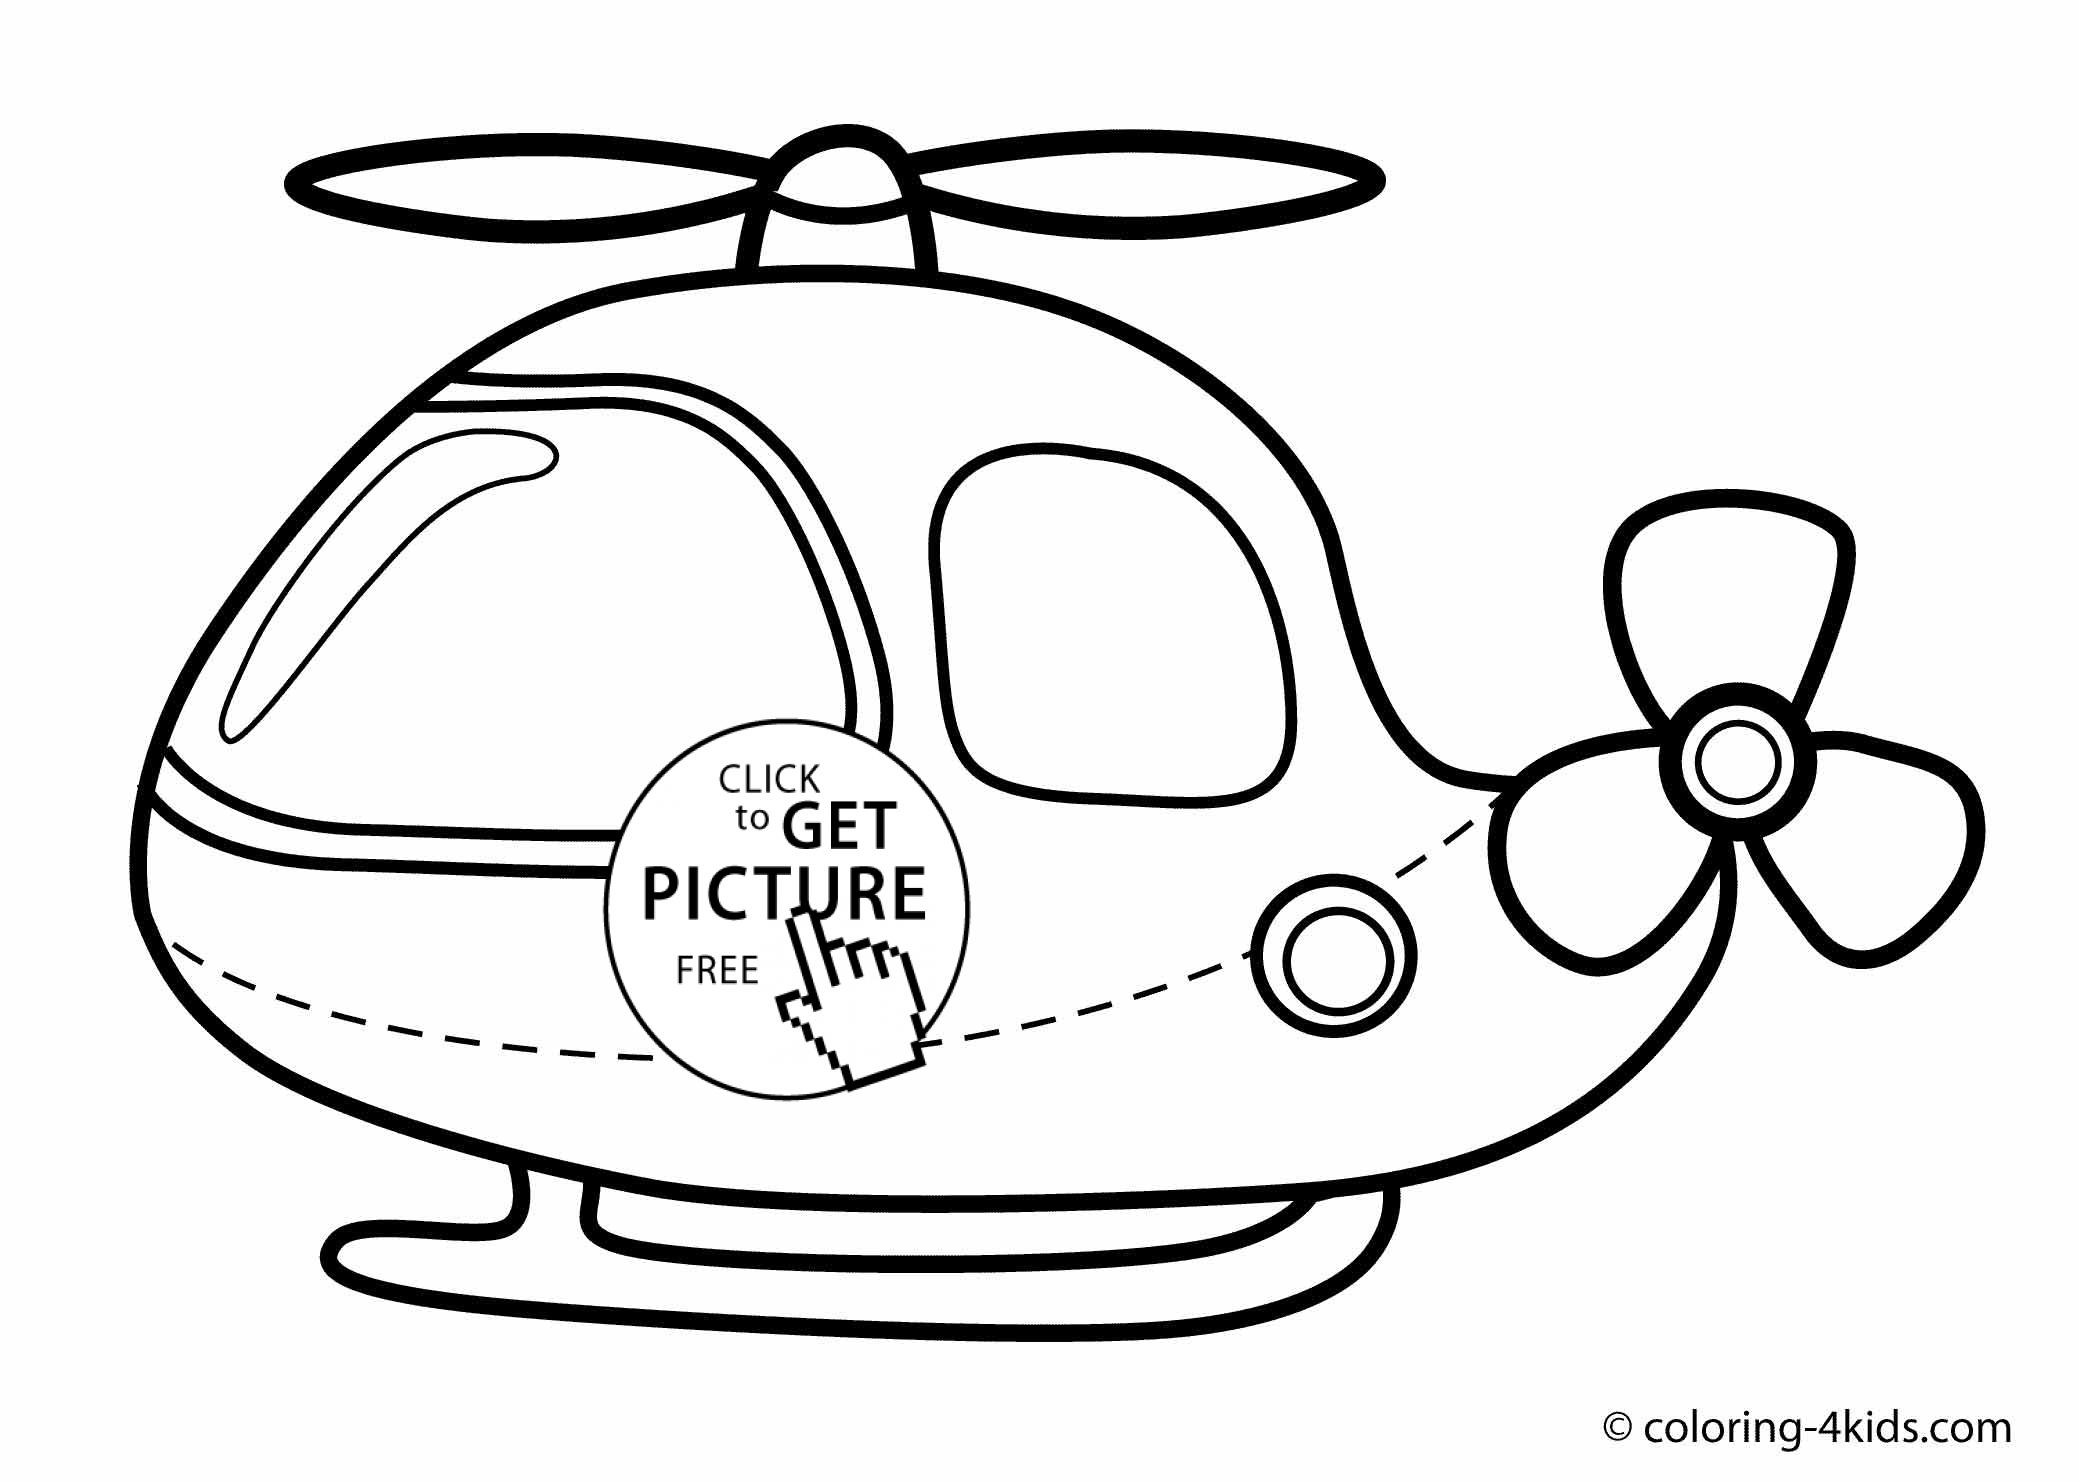 2079x1483 Download Coloring Pages Draw A Helicopter